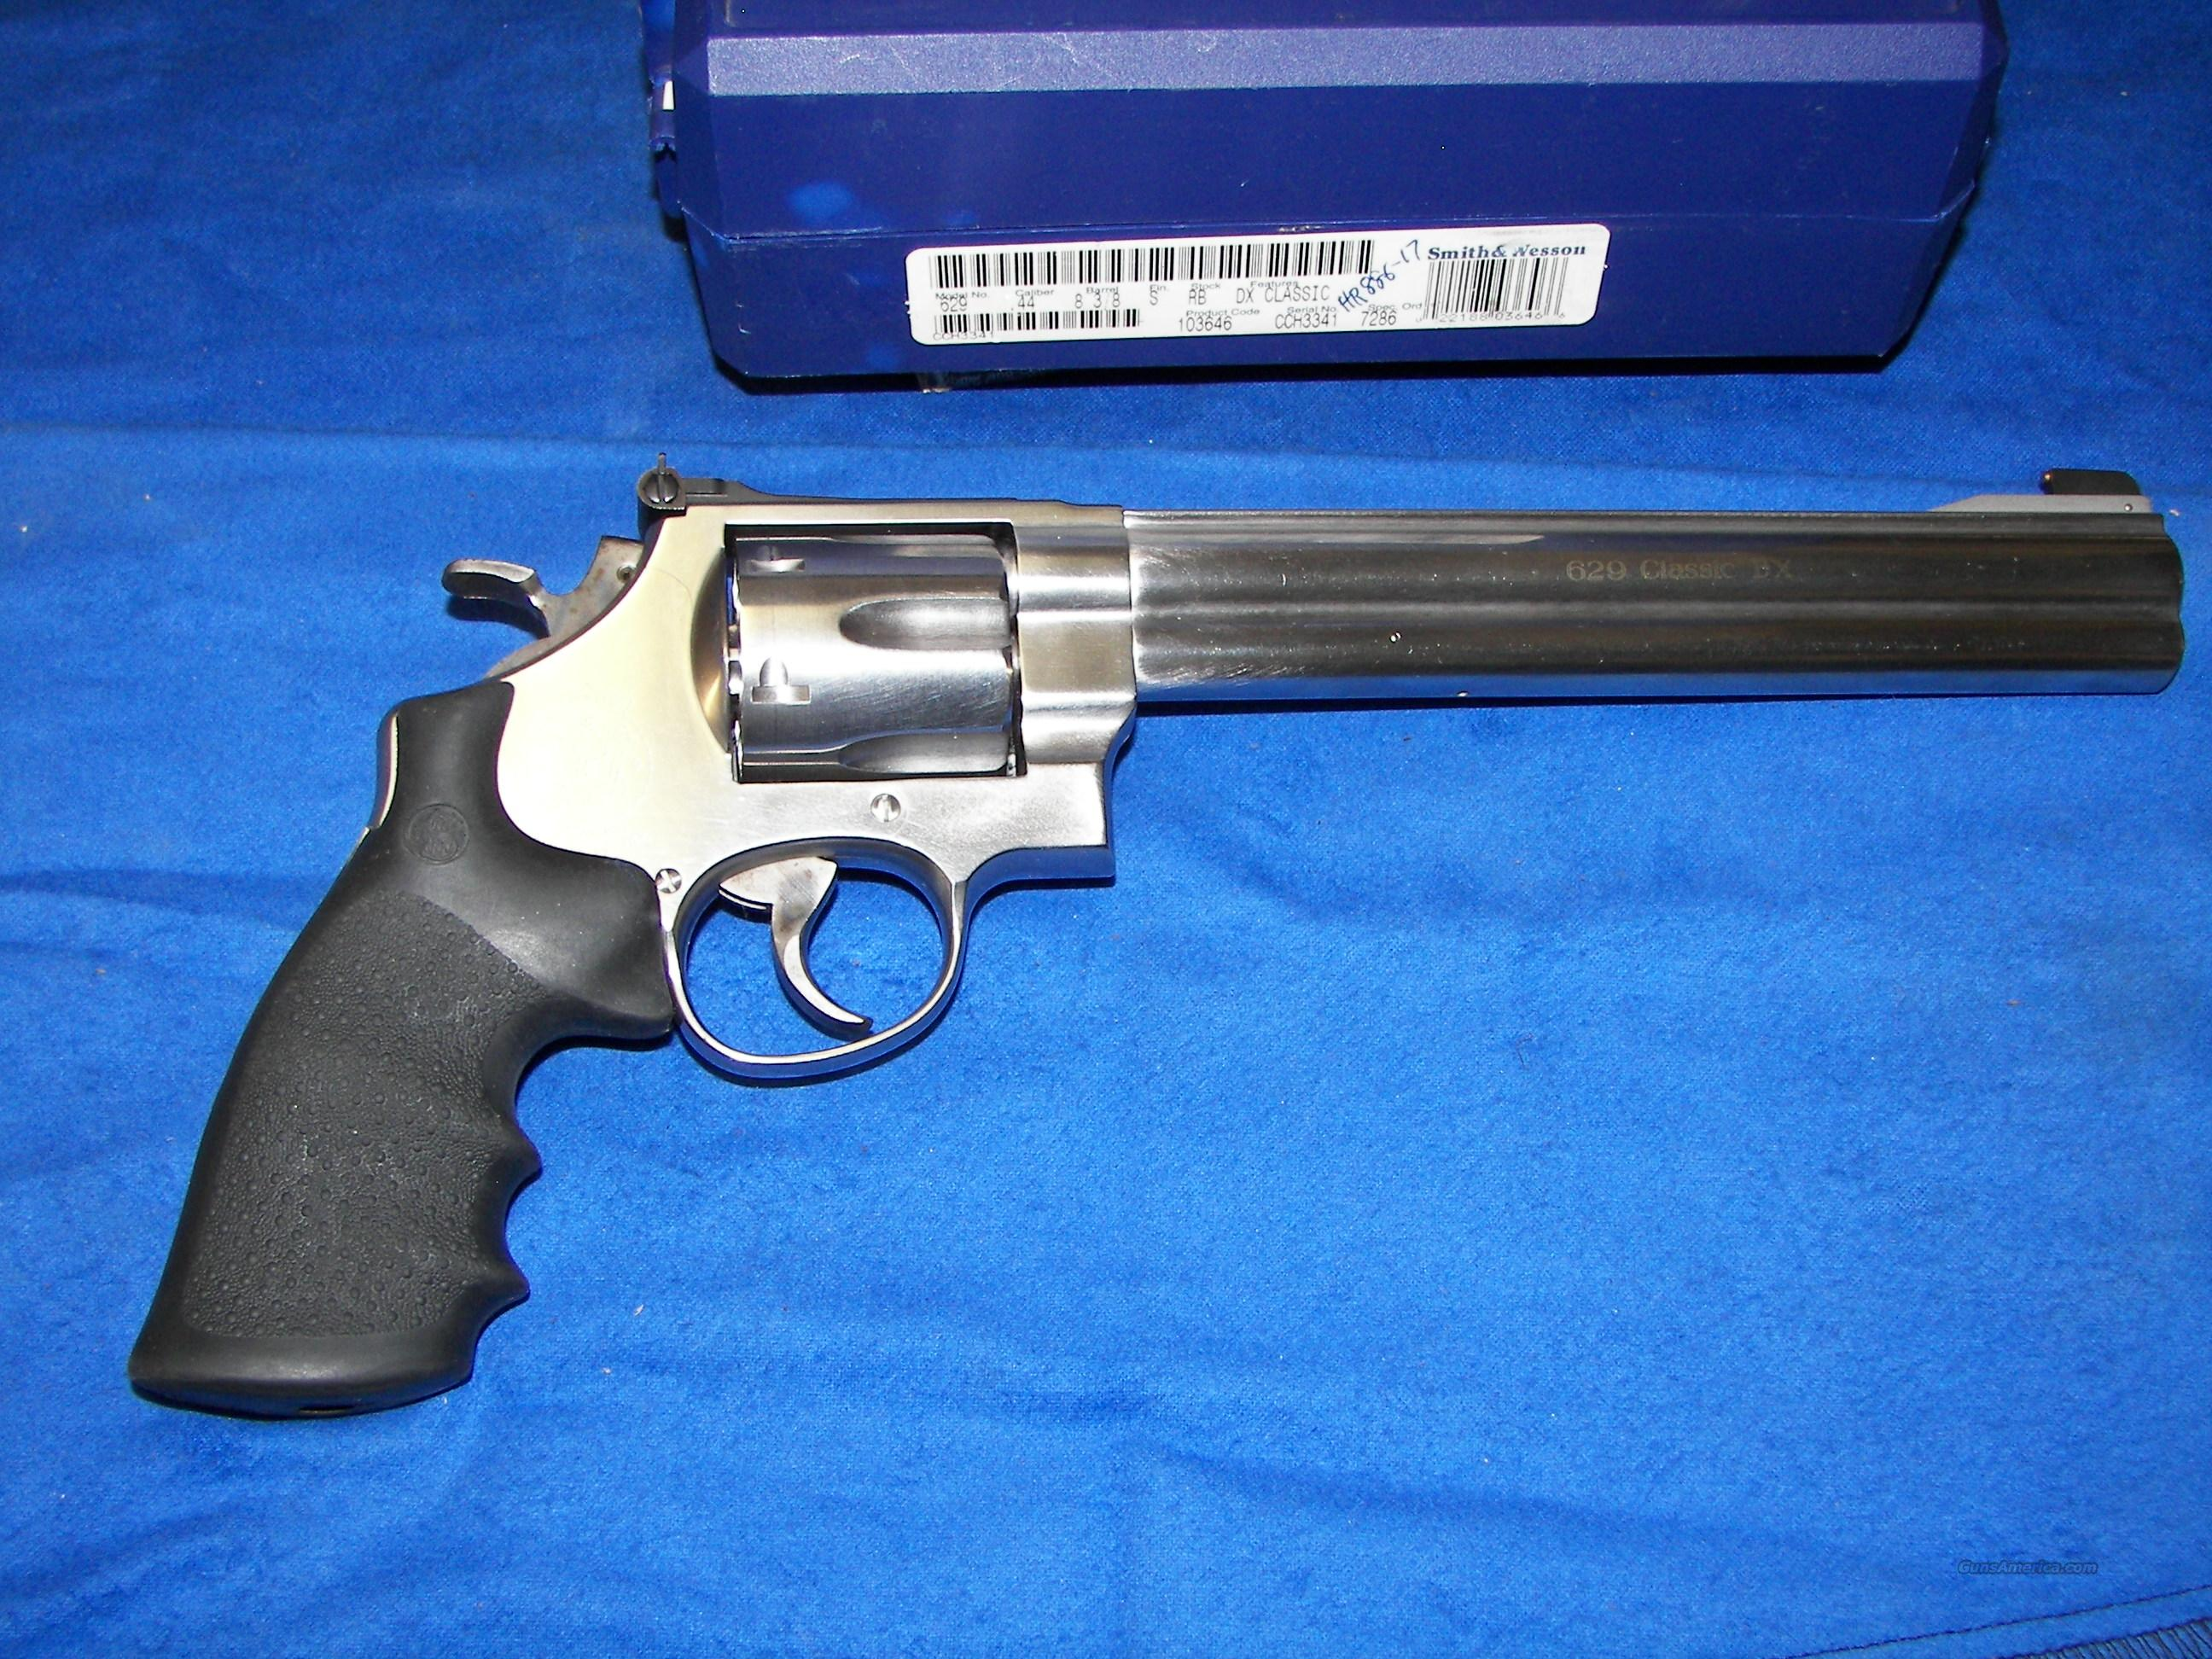 "S&W 629 -4 CLASSIC DELUXE .44 MAG 8 3/8"" AS-NEW  Guns > Pistols > Smith & Wesson Revolvers > Model 629"